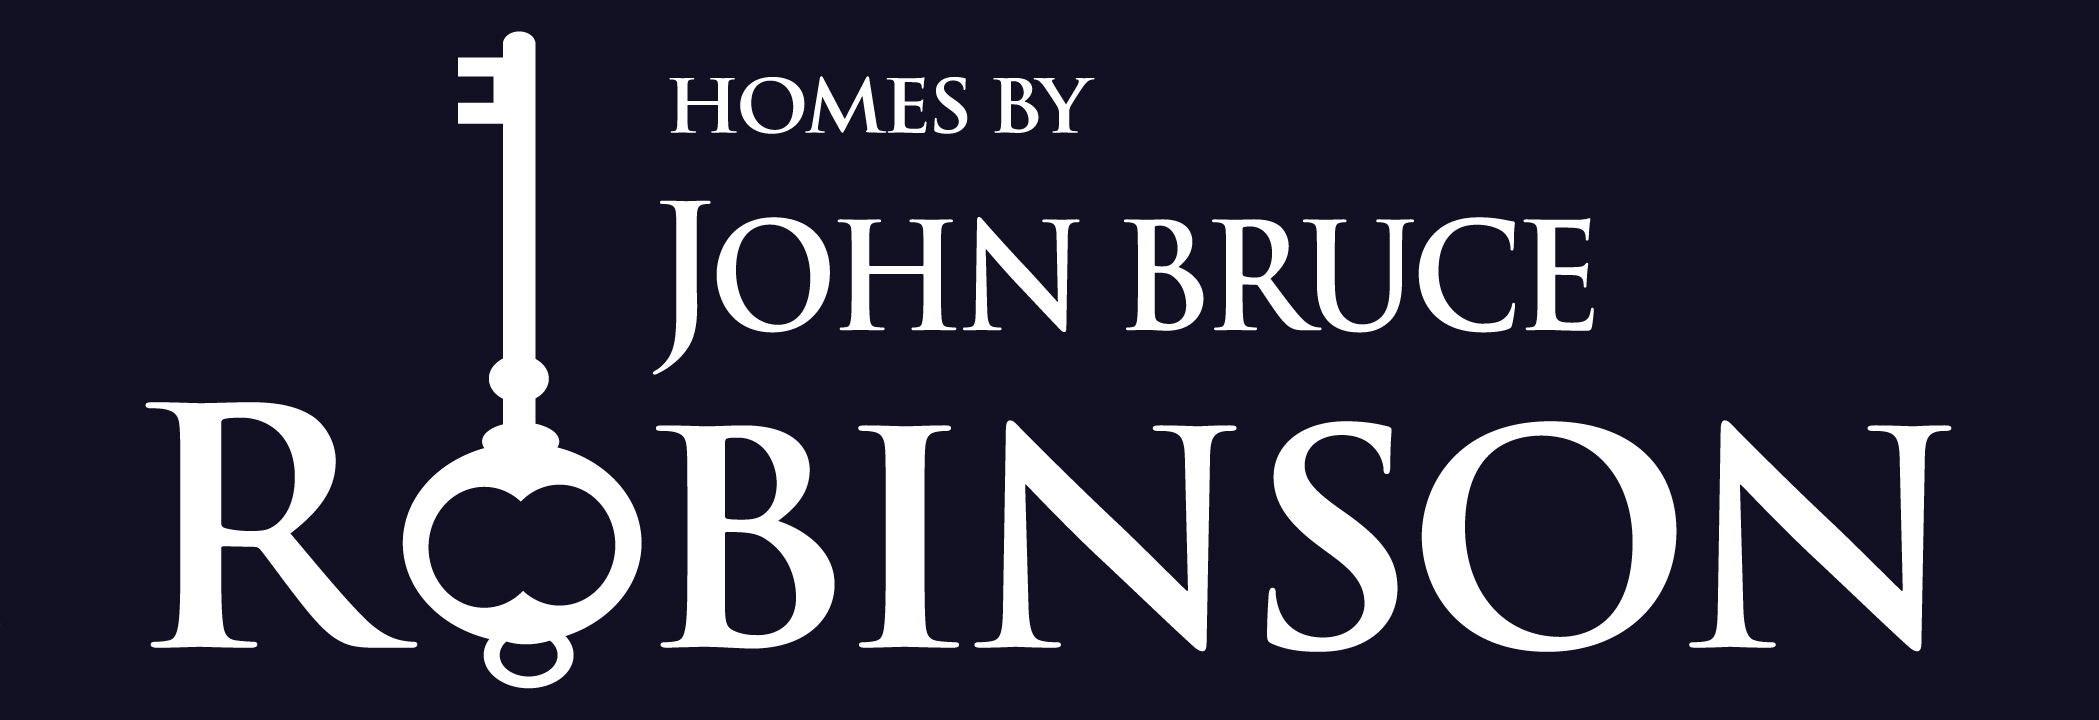 Homes by Bruce Robinson